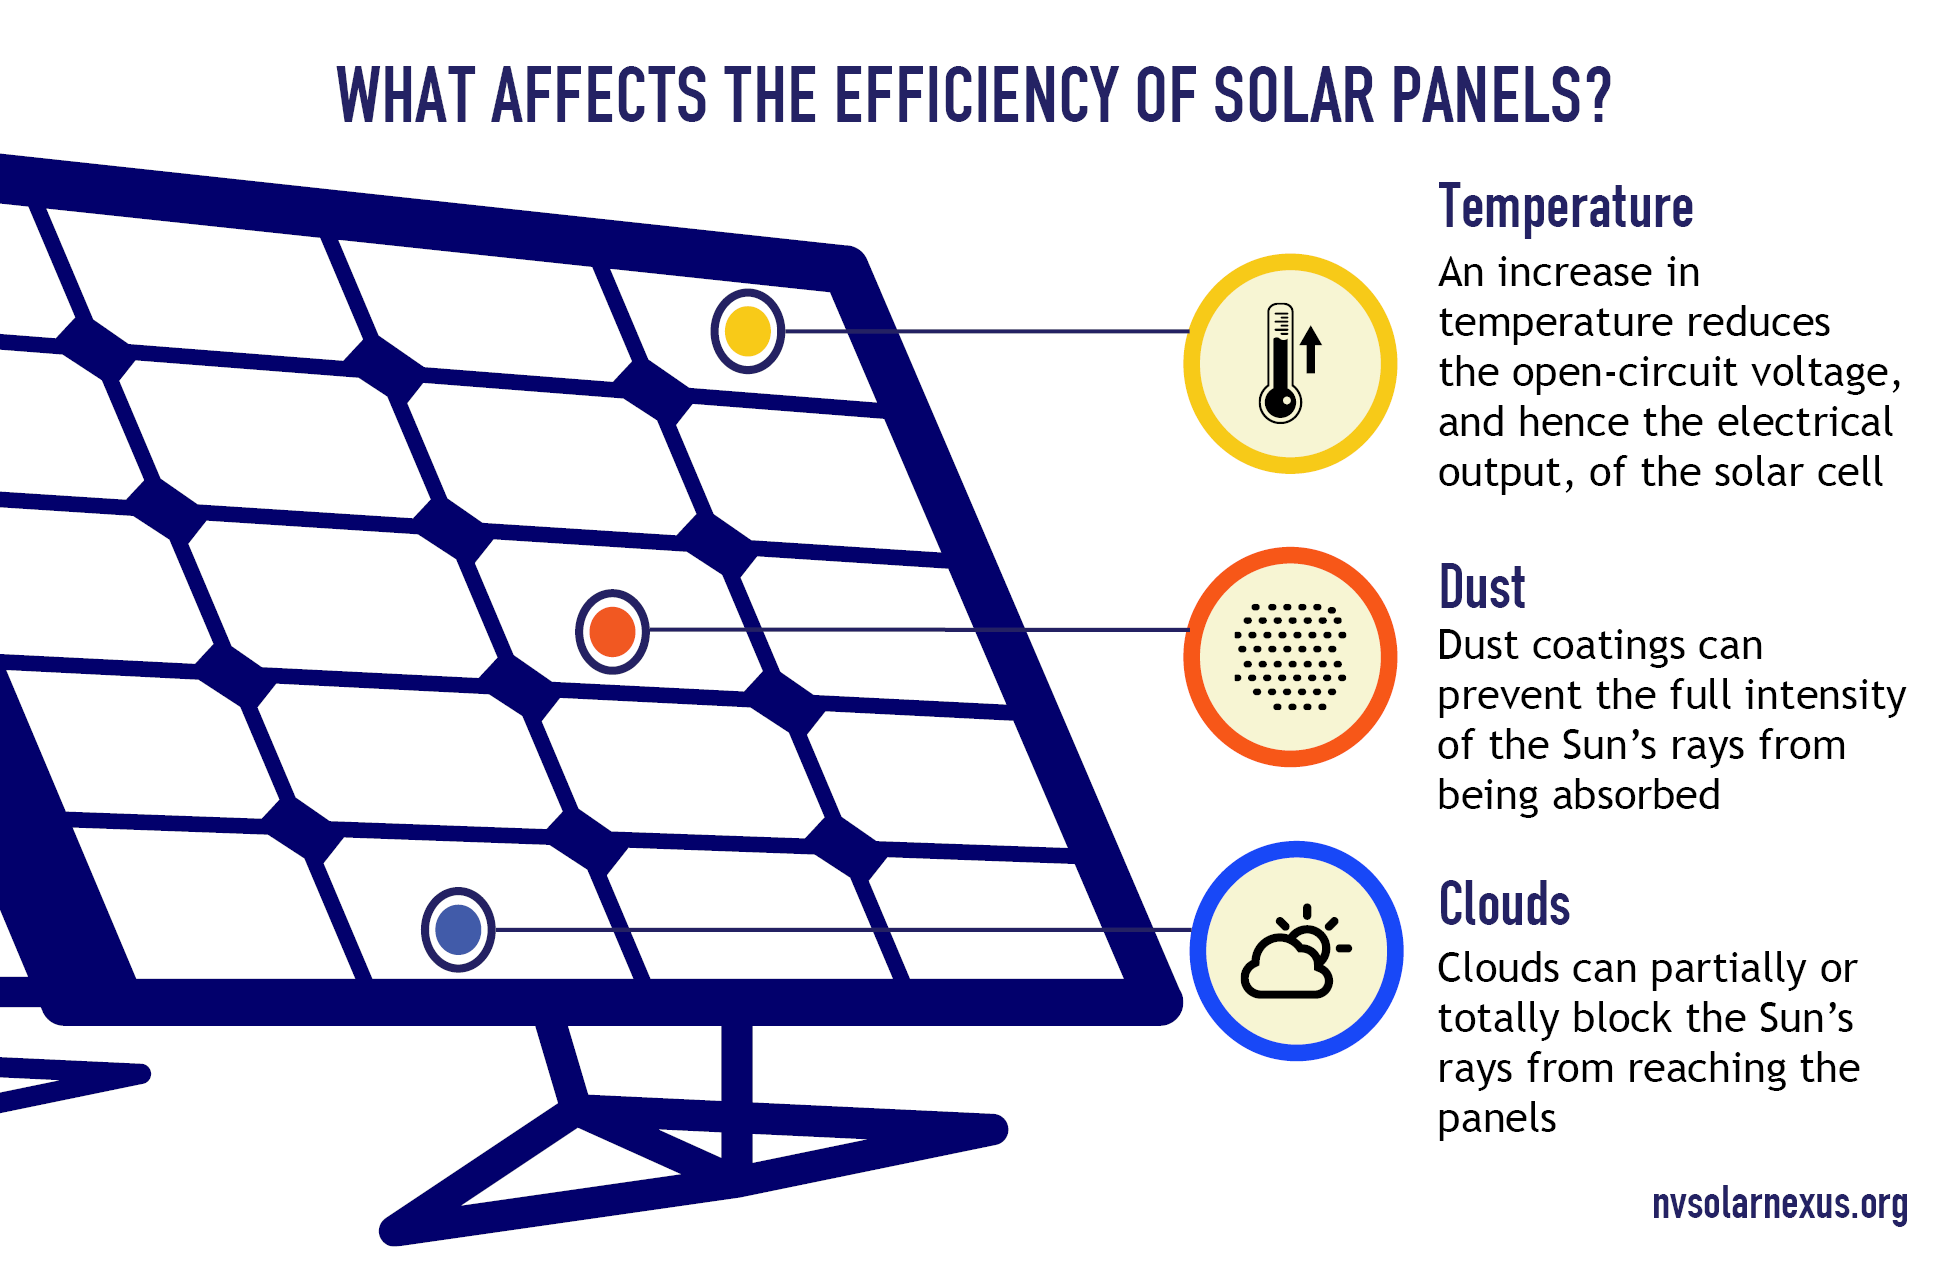 Diagram of a solar panel showing affects of temperature, dust, and clouds on solar panels